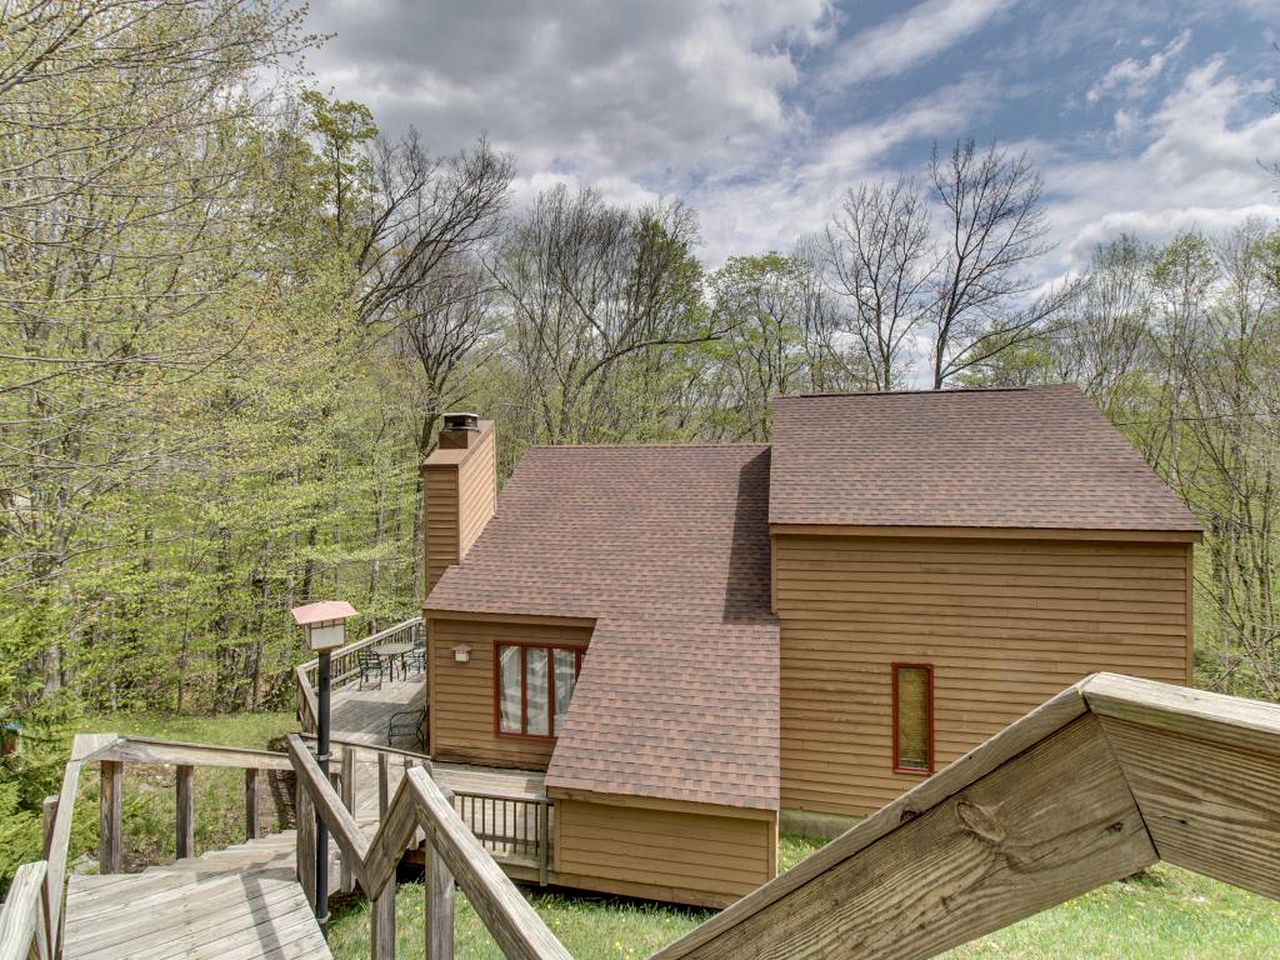 Cabins (Killington, Vermont, United States)